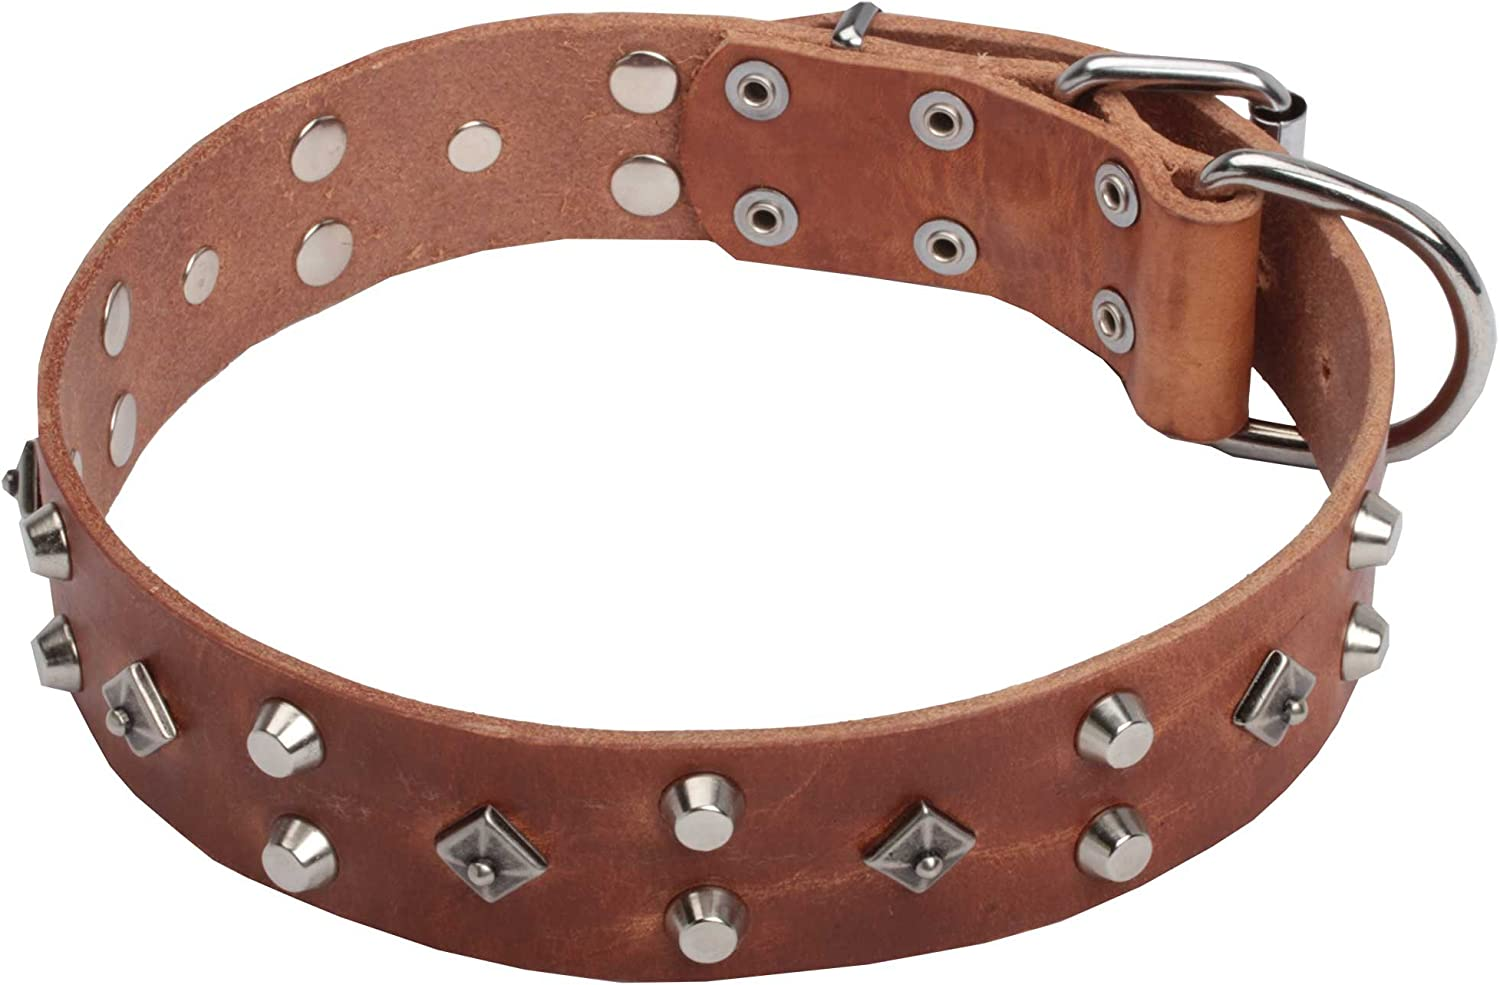 18 inch Tan Leather Dog Collar 'Pyramid of Cheops' with Silverlike Decoration  1 1 2 inch (40 mm) wide